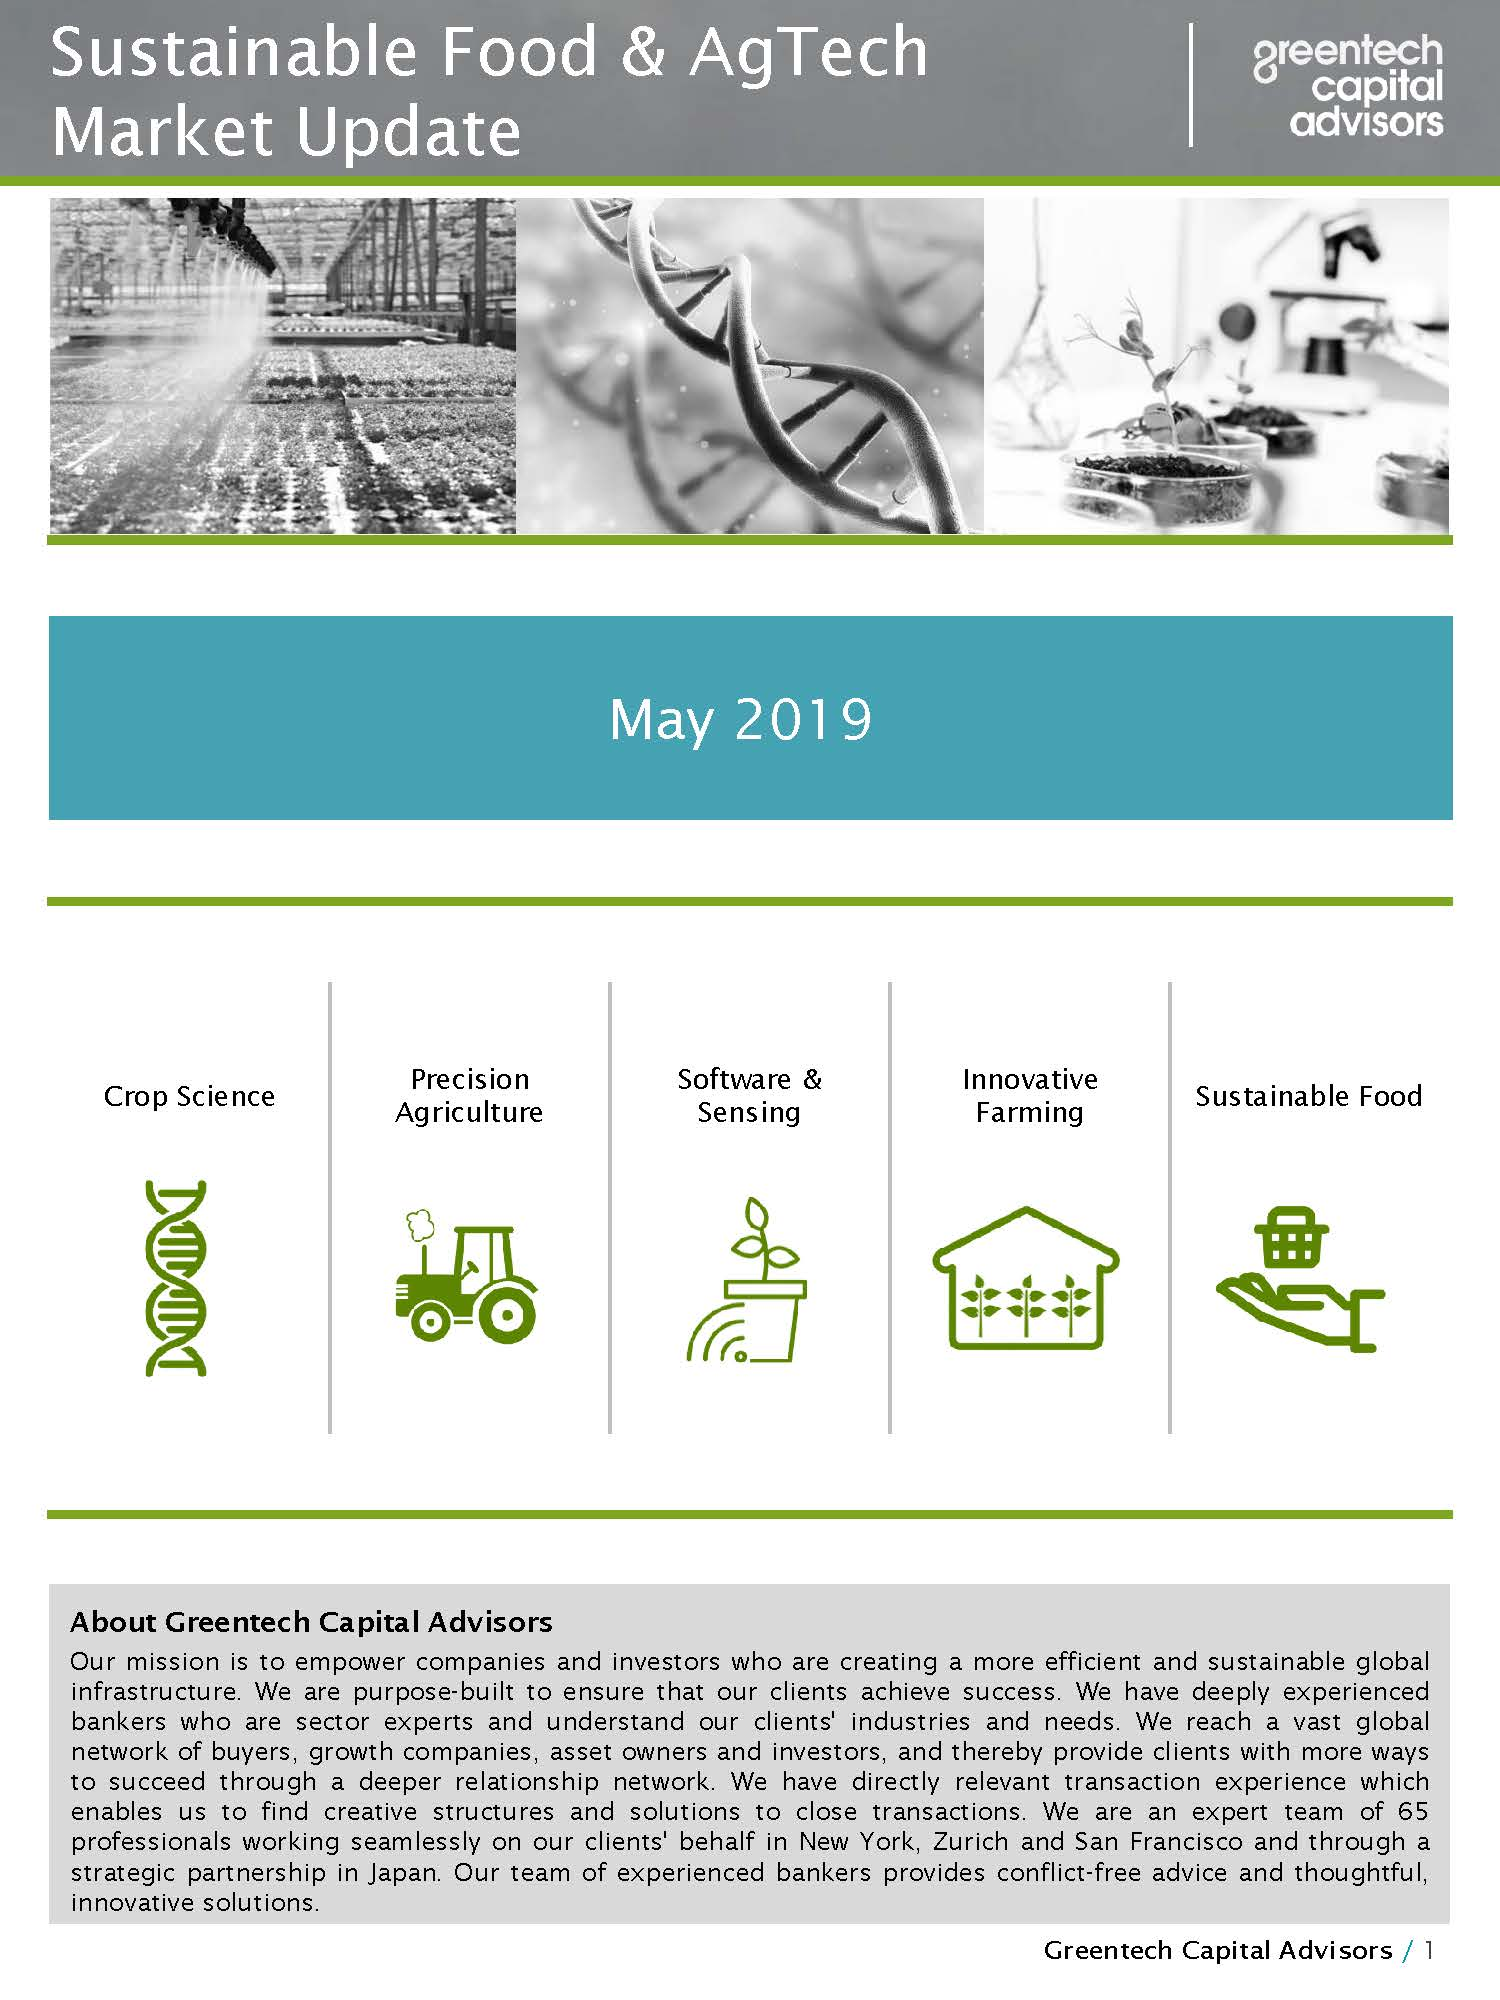 Sustainable Food & AgTech Market Update Newsletter - May 2019